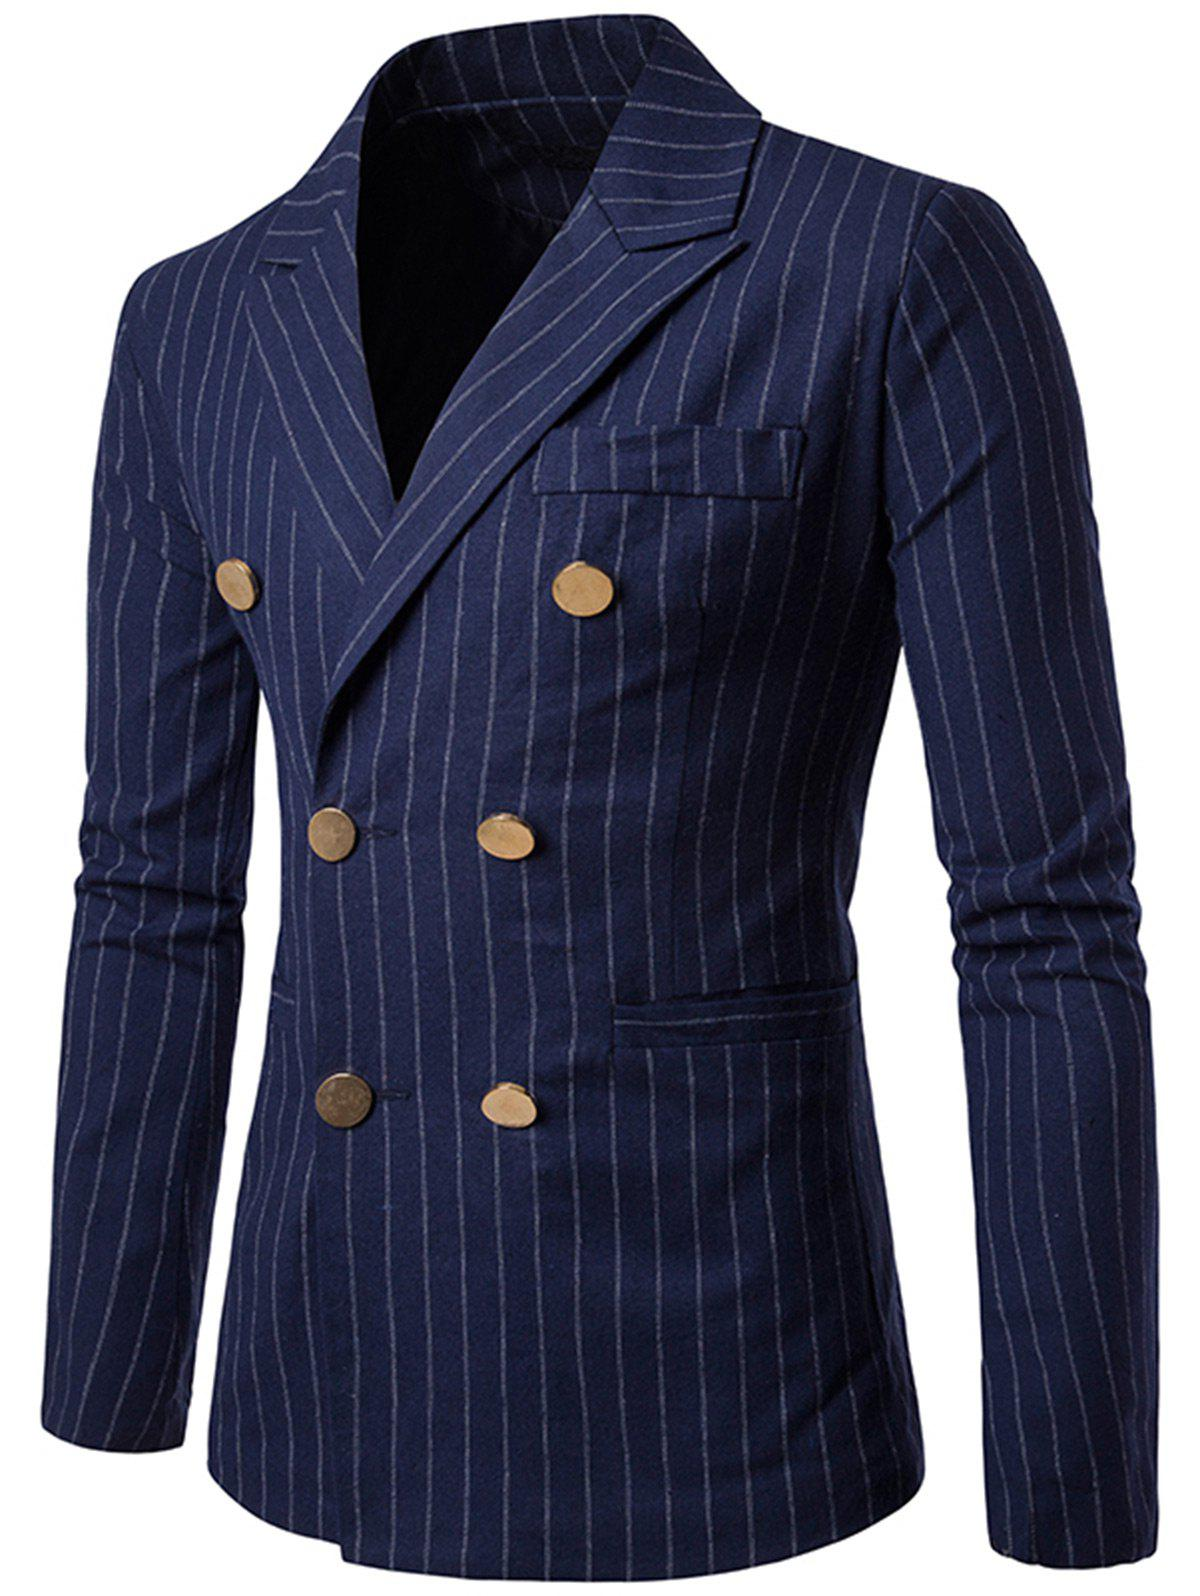 Vertical Stripe Peaked Lapel Casual Blazer - CADETBLUE 2XL